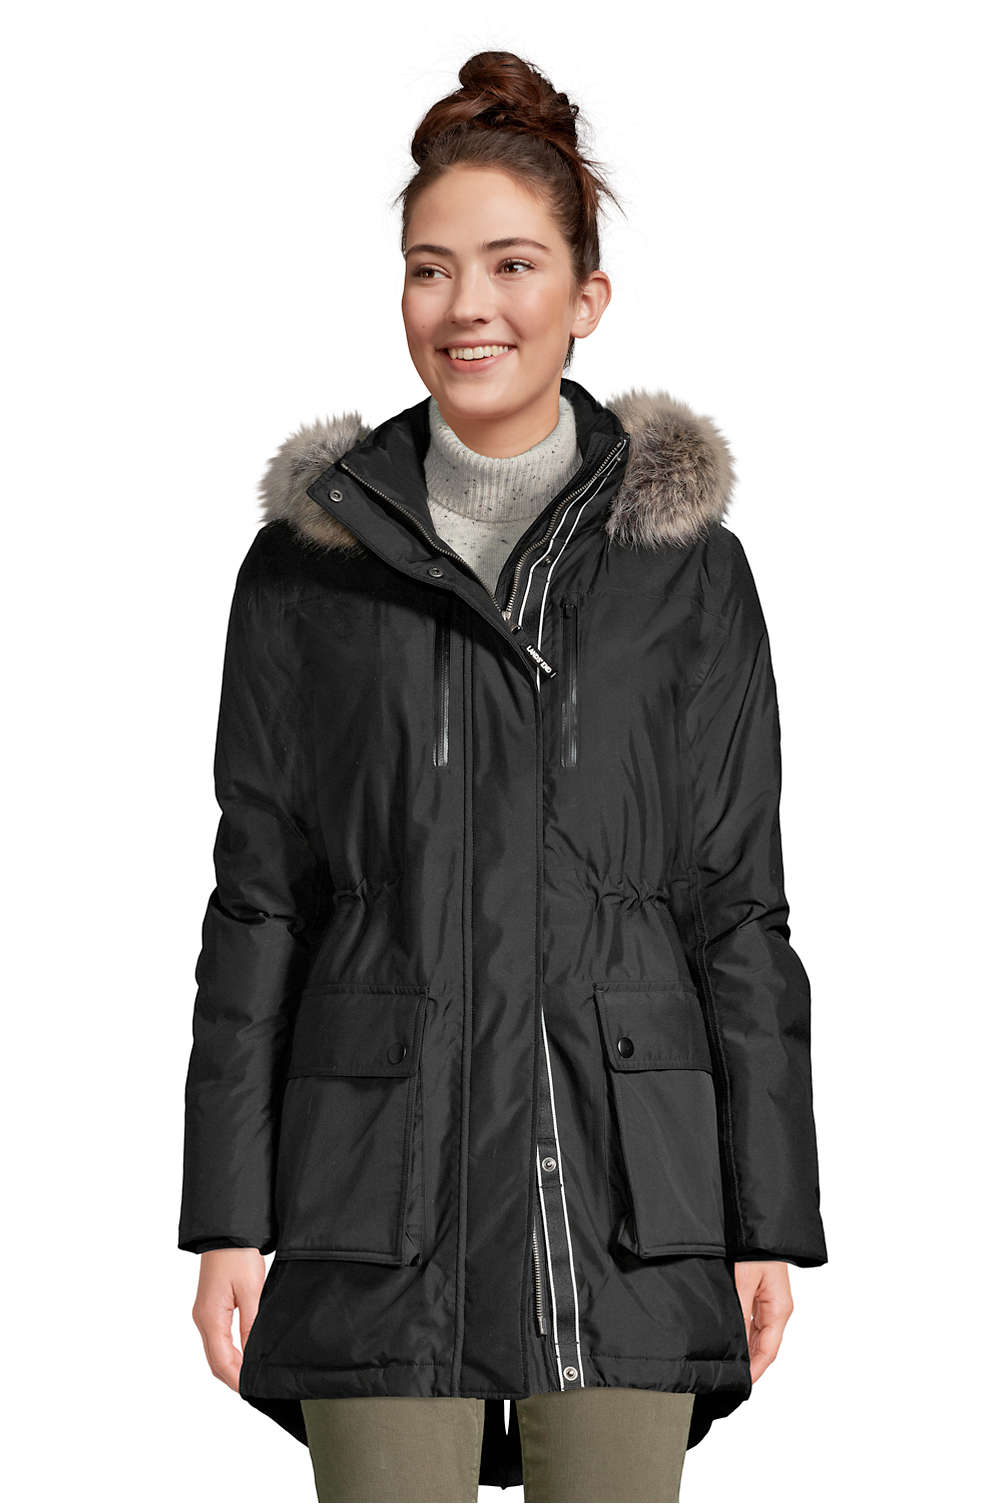 sports shoes b75c9 9fbd5 Women's Expedition Down Parka